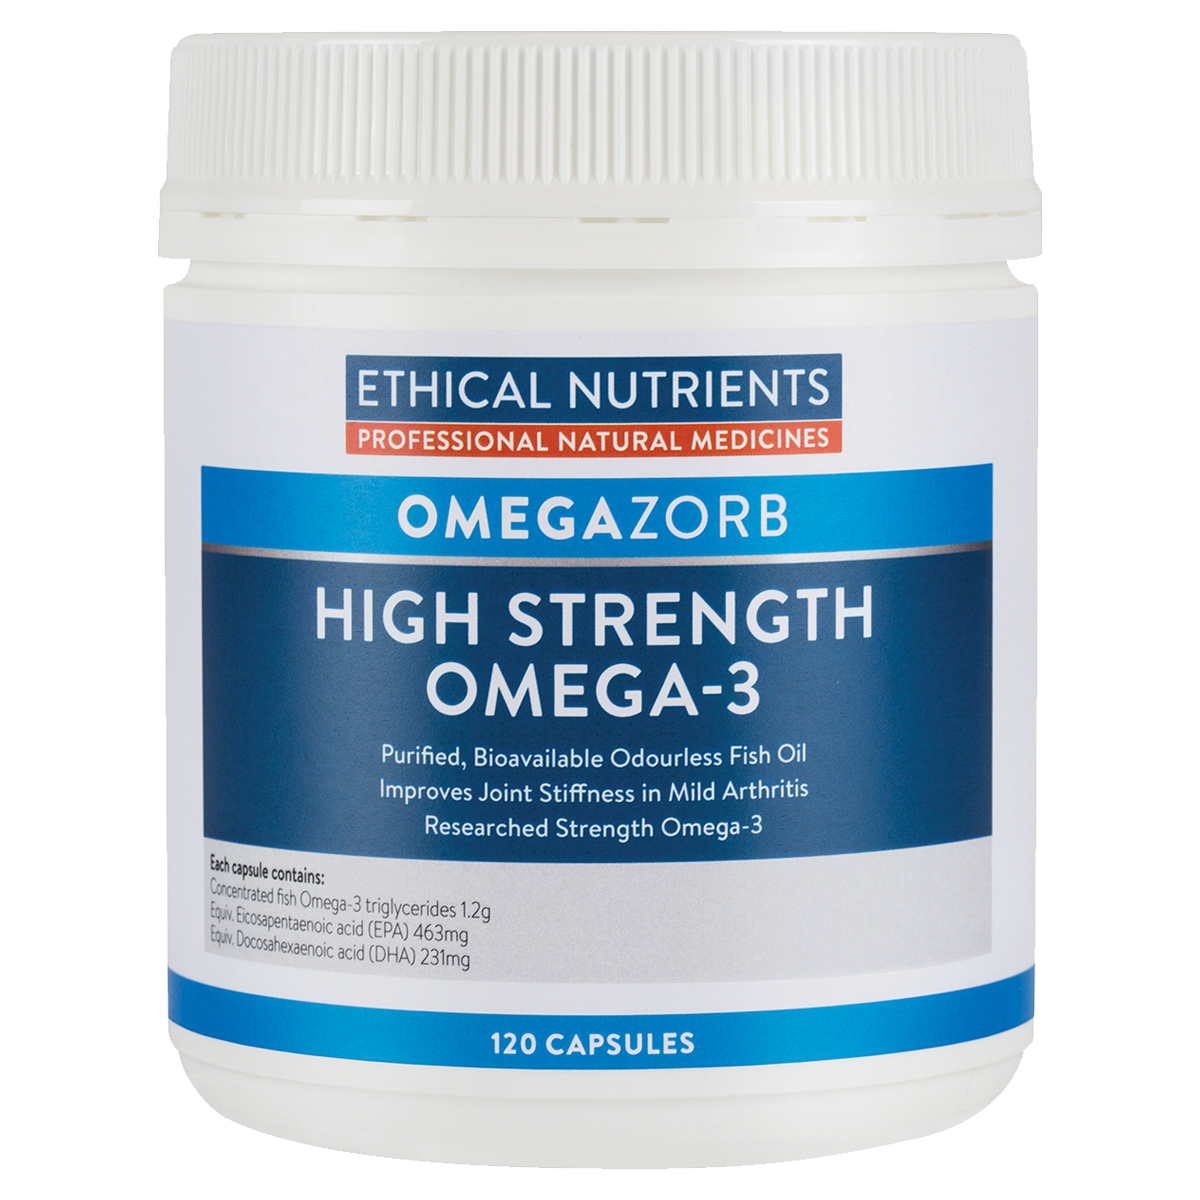 Ethical Nutrients Hi-Strength Fish Oil 120 Caps